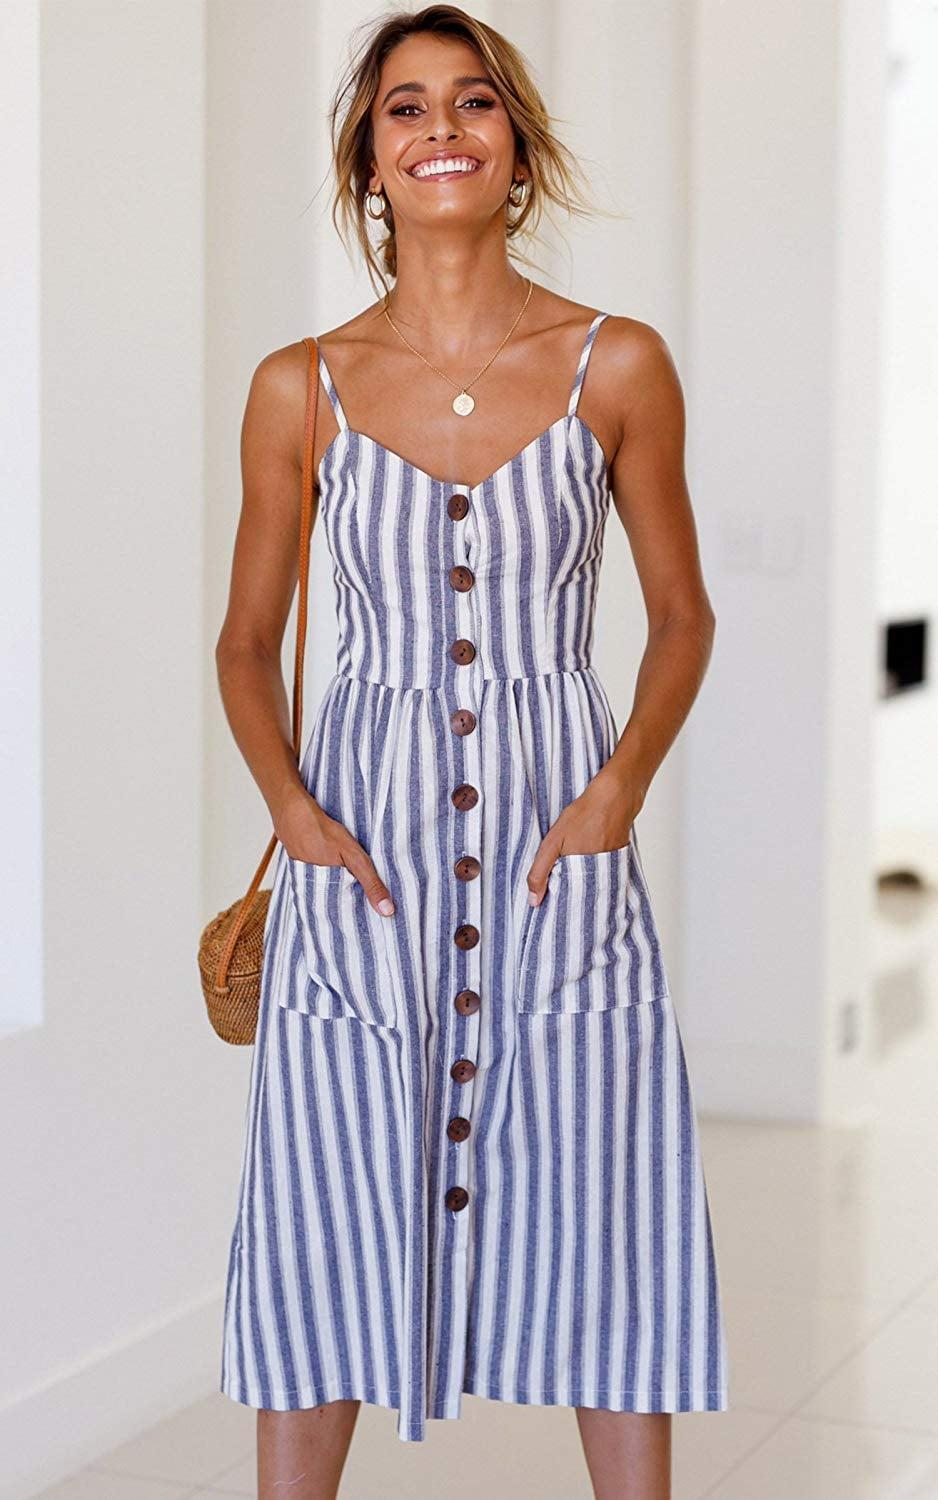 <p>This <span>Angashion Midi Dress</span> ($15 - $30) comes in 30 other different prints, and has over 10,000 great reviews. We particularly like this color combo for the nautical vibes, as it makes us want to go on a cruise.</p>